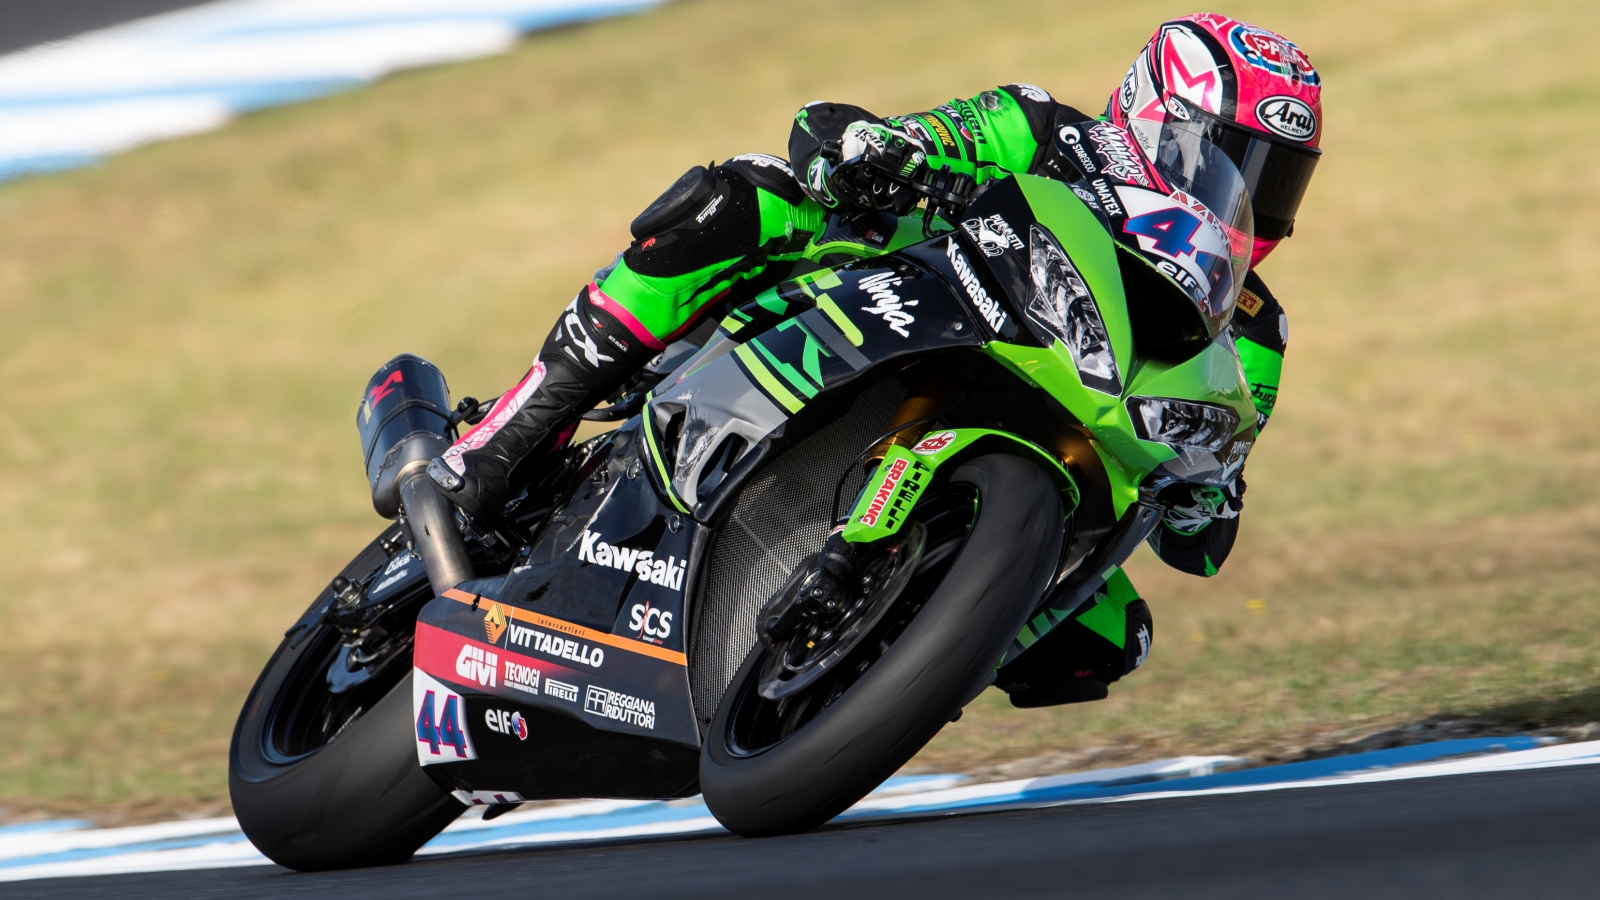 Supersport 2019: pilotos, motos, calendario, españoles y cinco favoritos